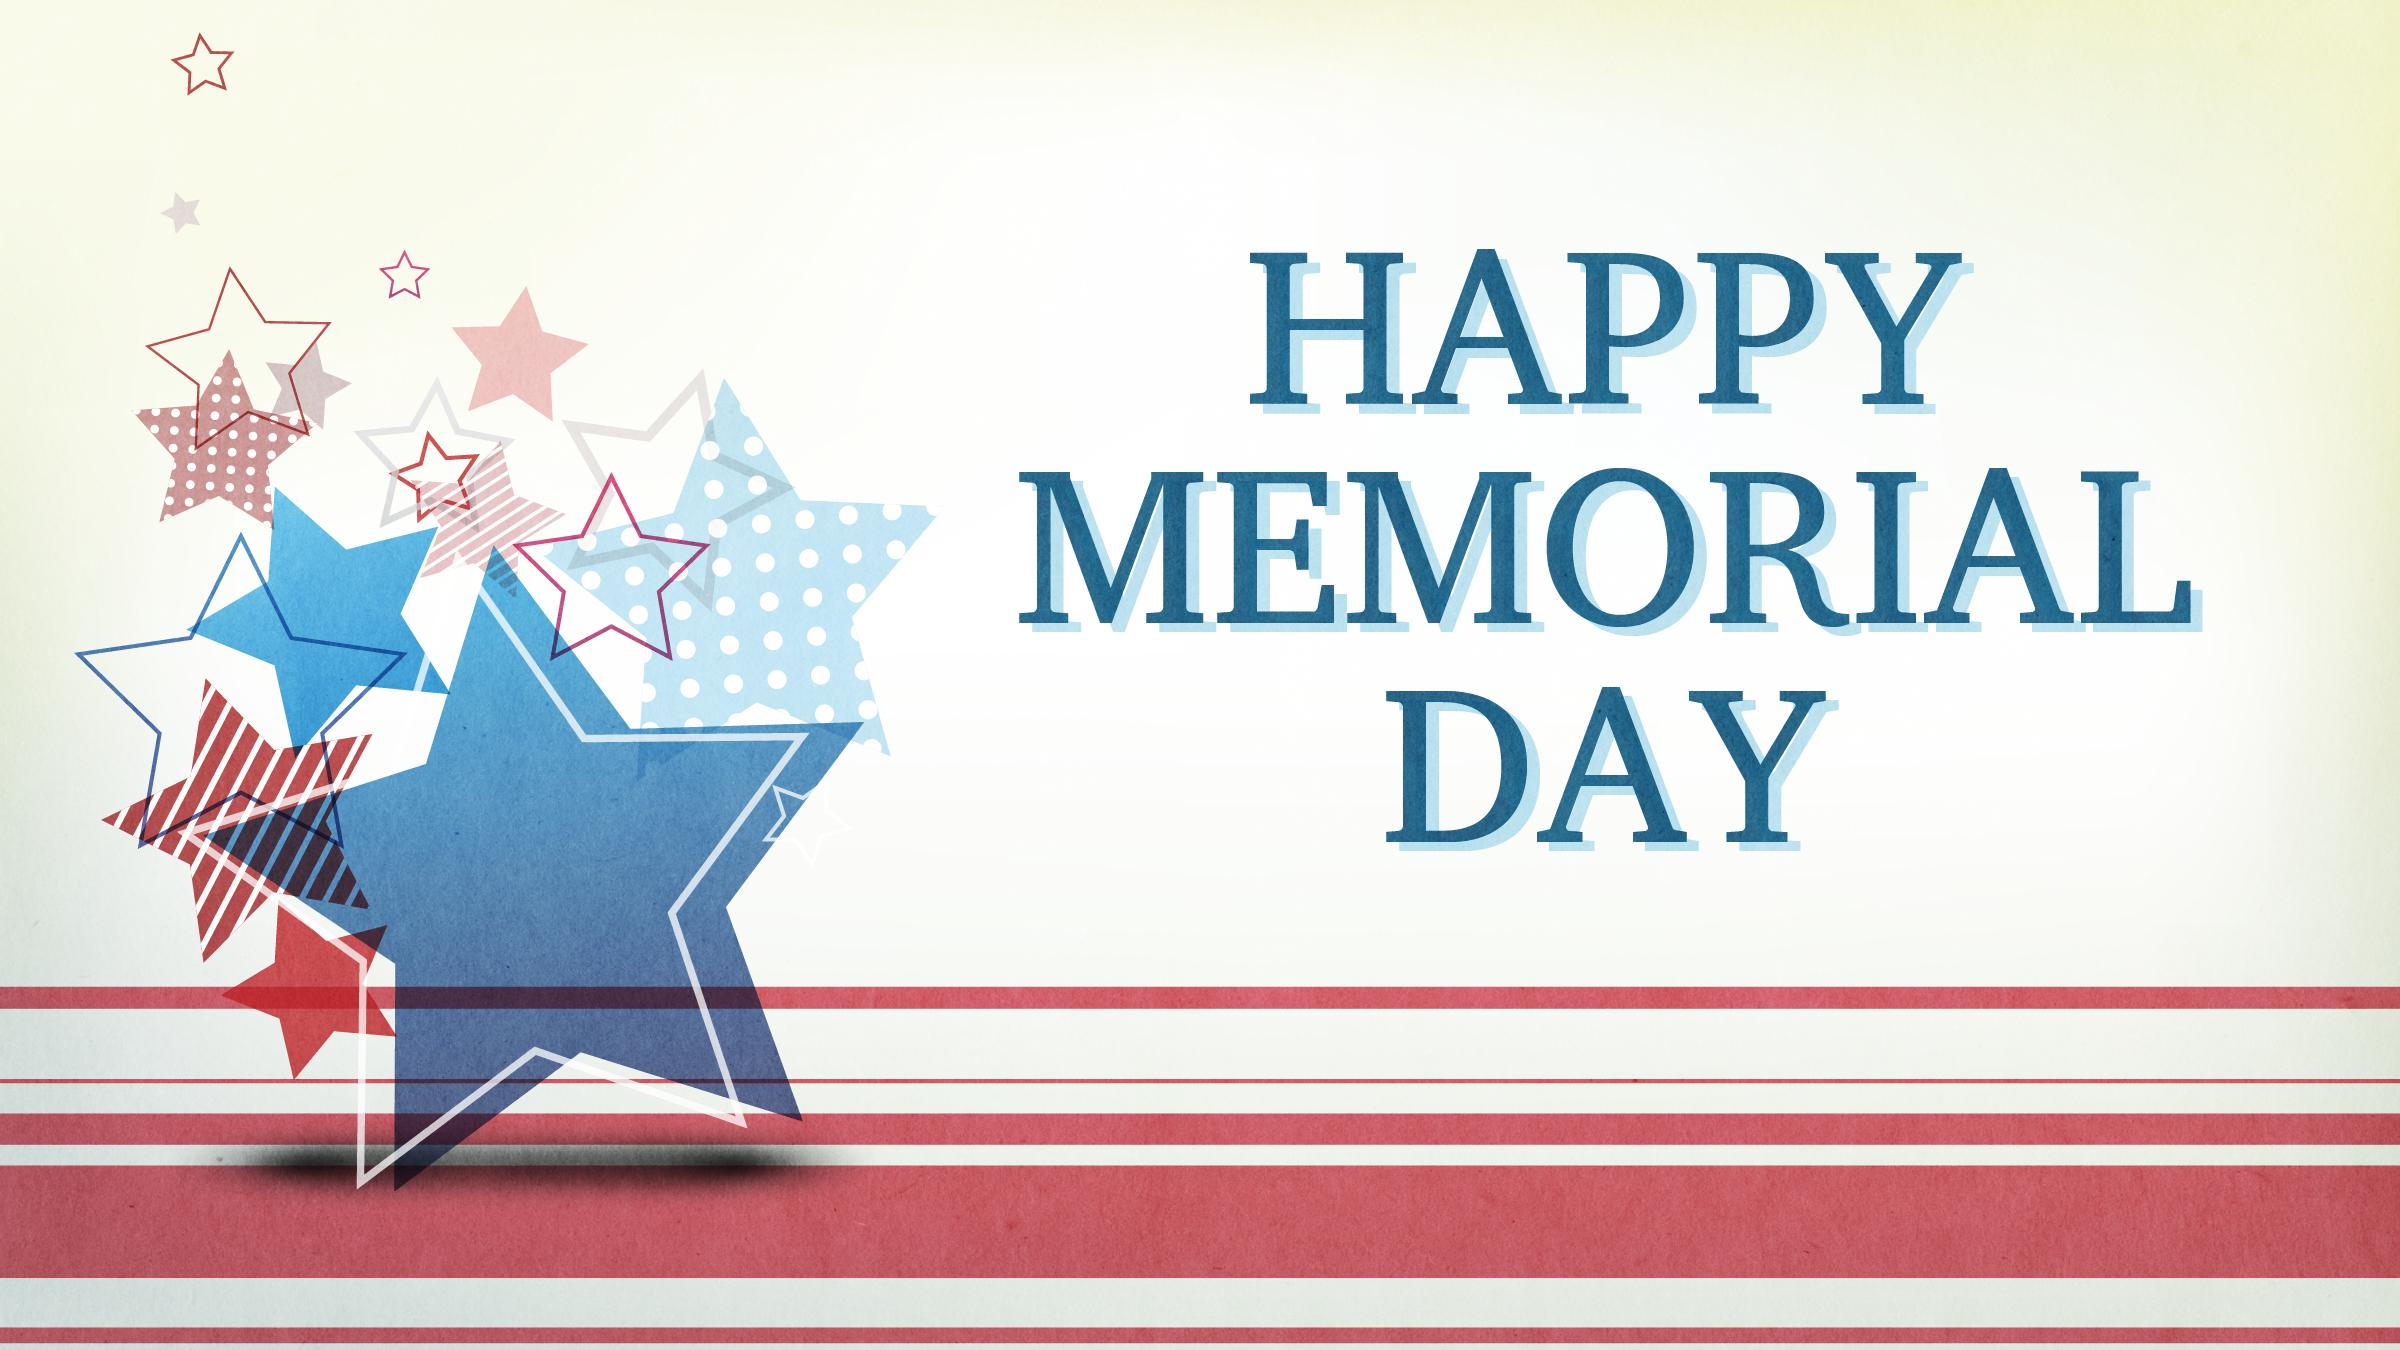 Memorial Day Backgrounds